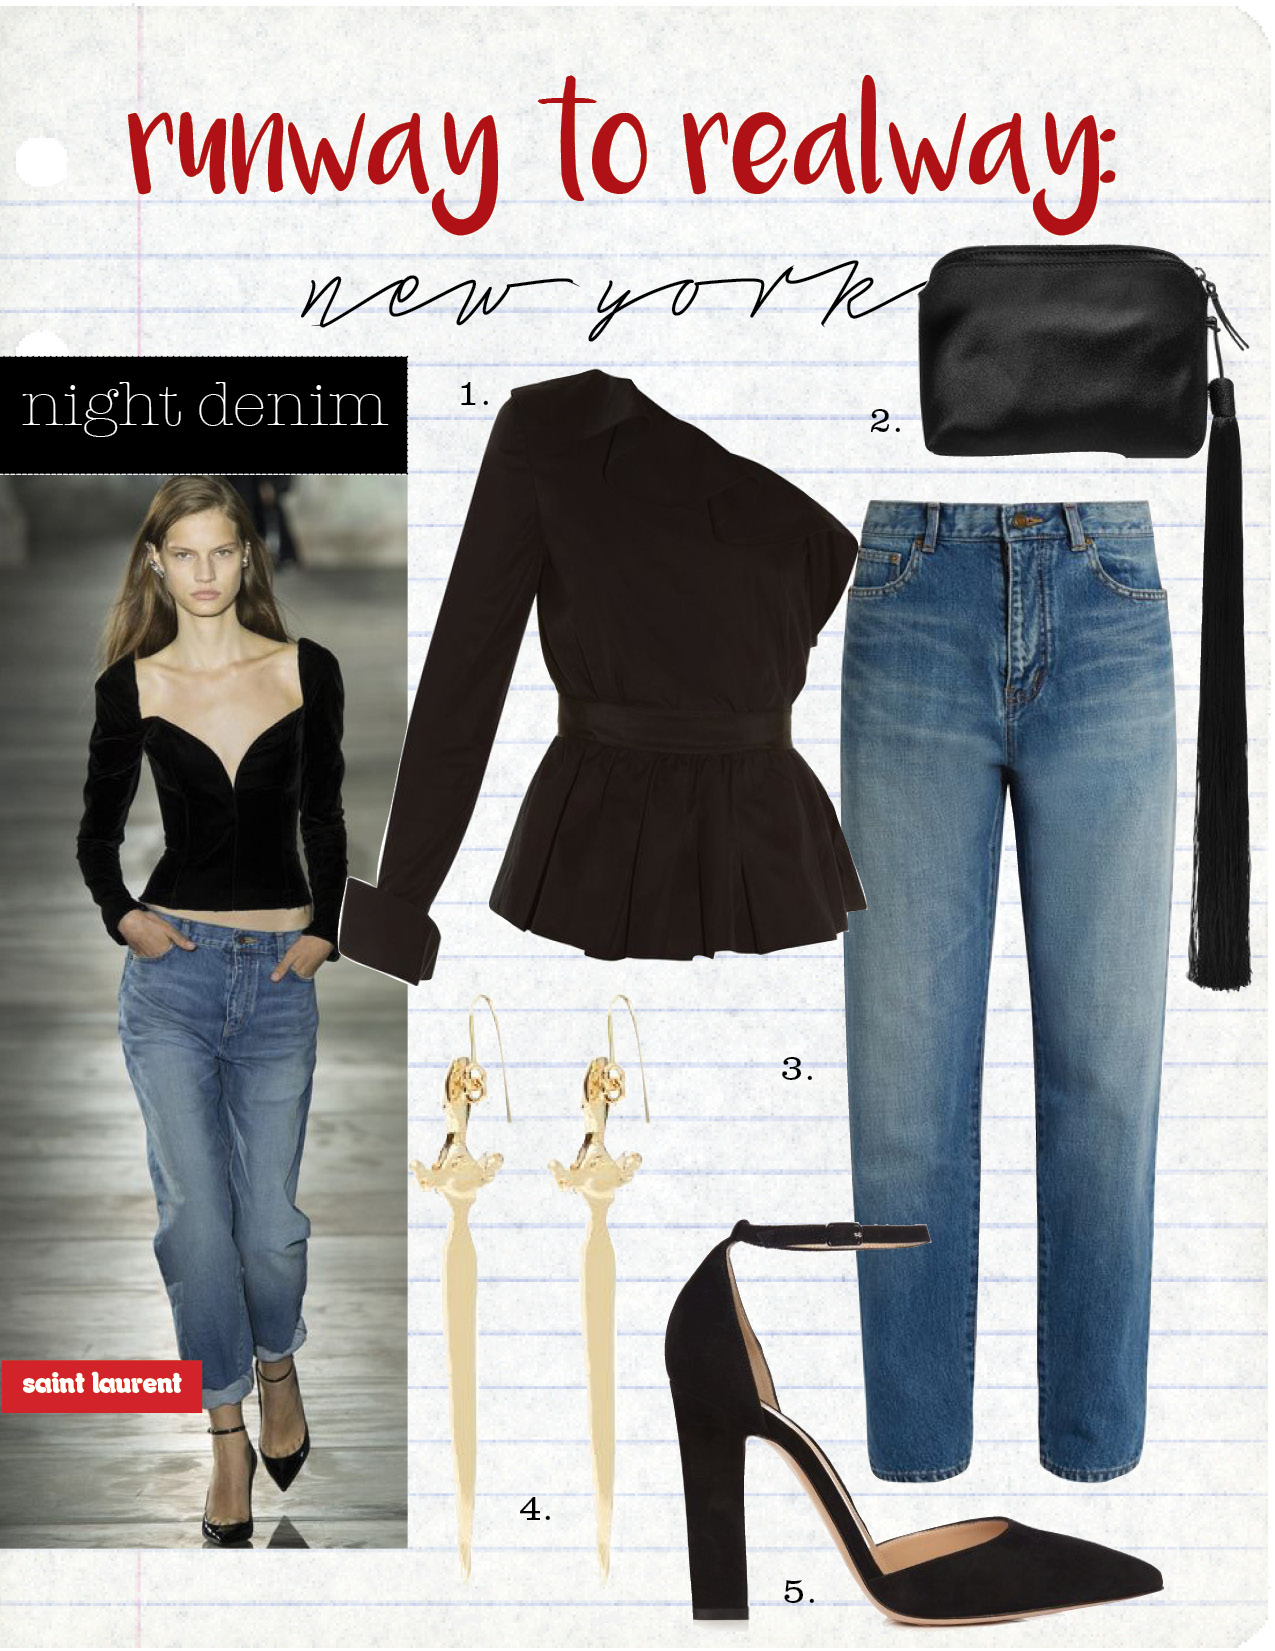 1. fendi one-shoulder peplum-hem cotton top, $1090,  matchesfashion.com  2. the row wristlet mini tasseled satin clutch, $1090,  net-a-porter.com  3. saint laurent low-slung boyfriend jeans, $525,  matchesfashion.com  4. valentino sword-drop earrings, $437,  matchesfashion.com  5. gianvito rossi mila point-toe suede pumps, $704,  matchesfashion.com